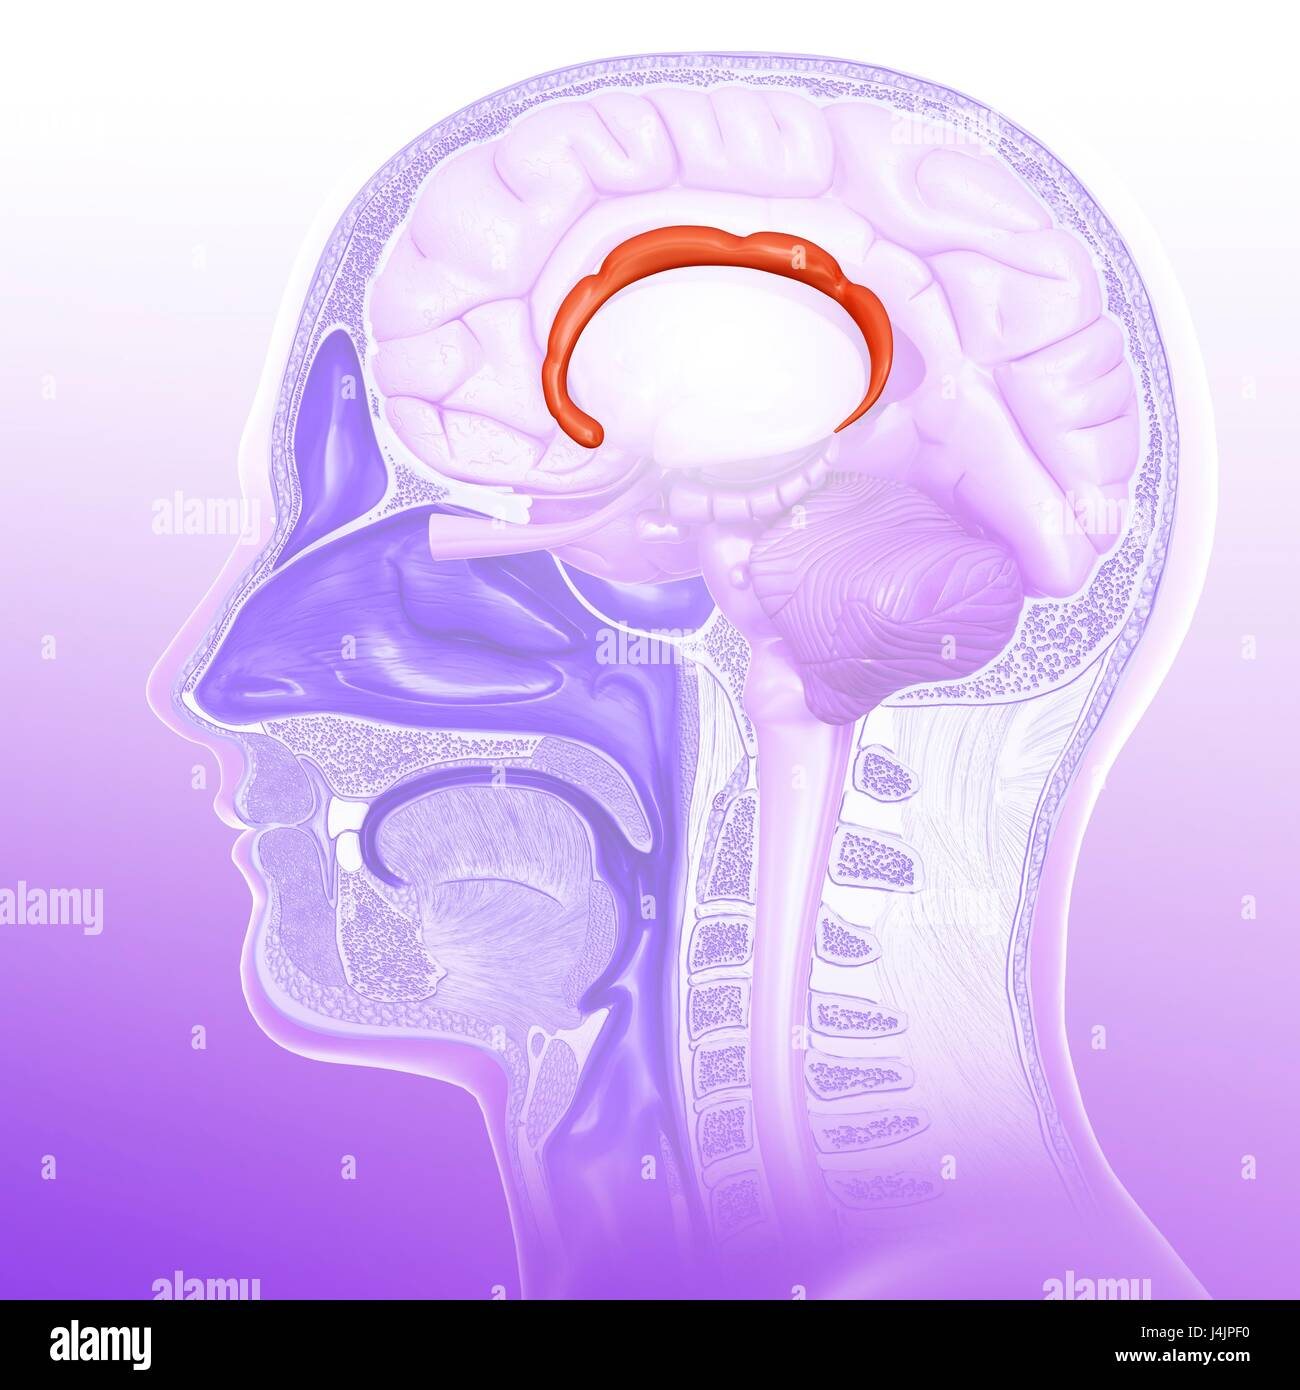 Illustration du gyrus cingulaire du cerveau humain. Photo Stock